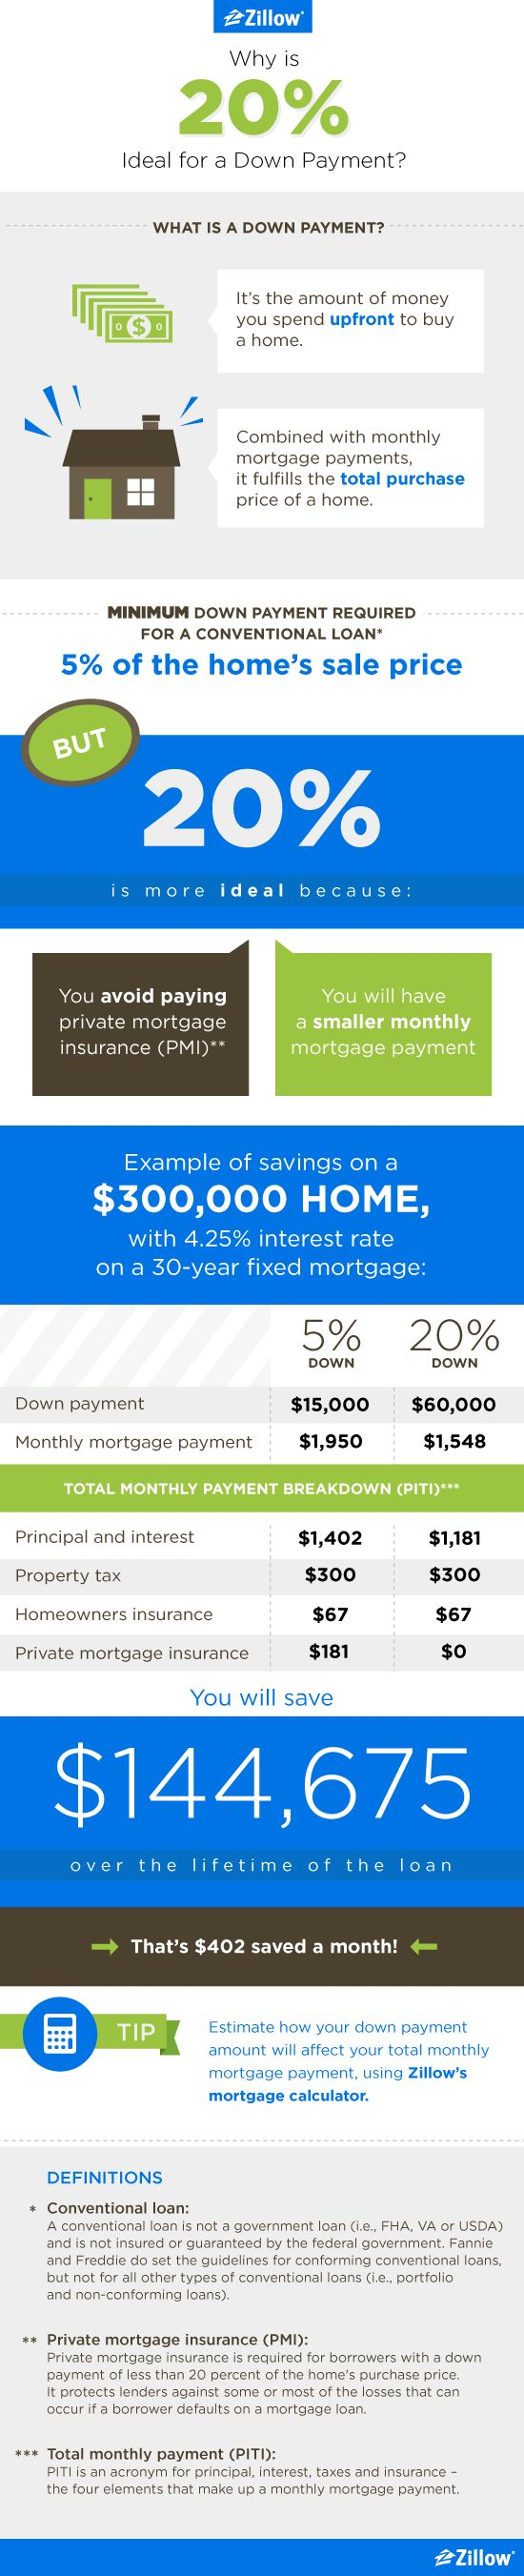 Zillow Infographic: Why Is 20% Ideal for a Down Payment?   DATE:MAY 28, 2014